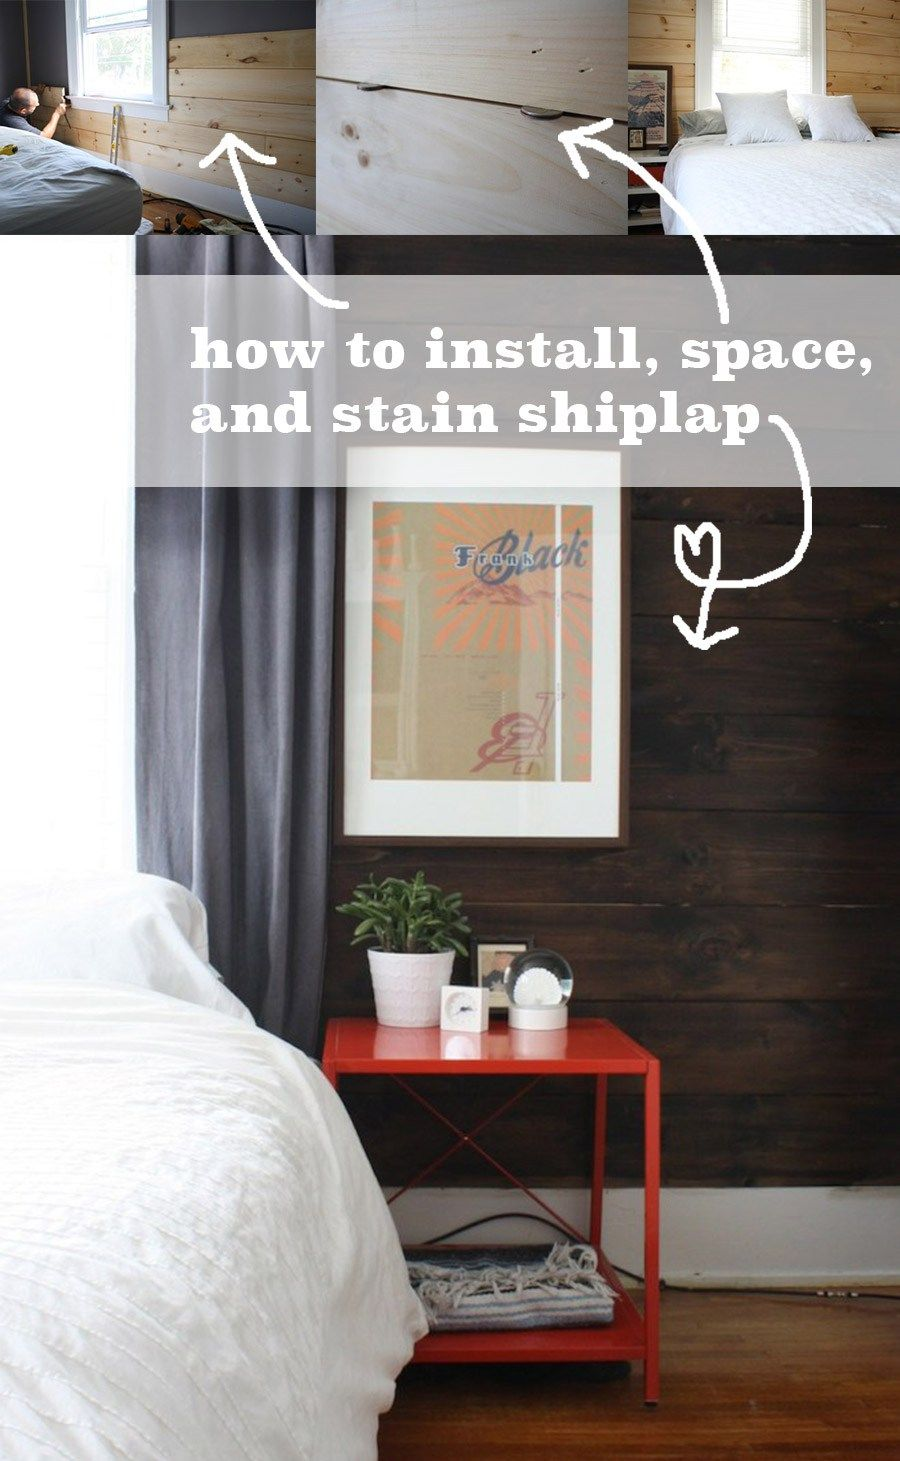 install shiplap boards to create a customized feature wall in your